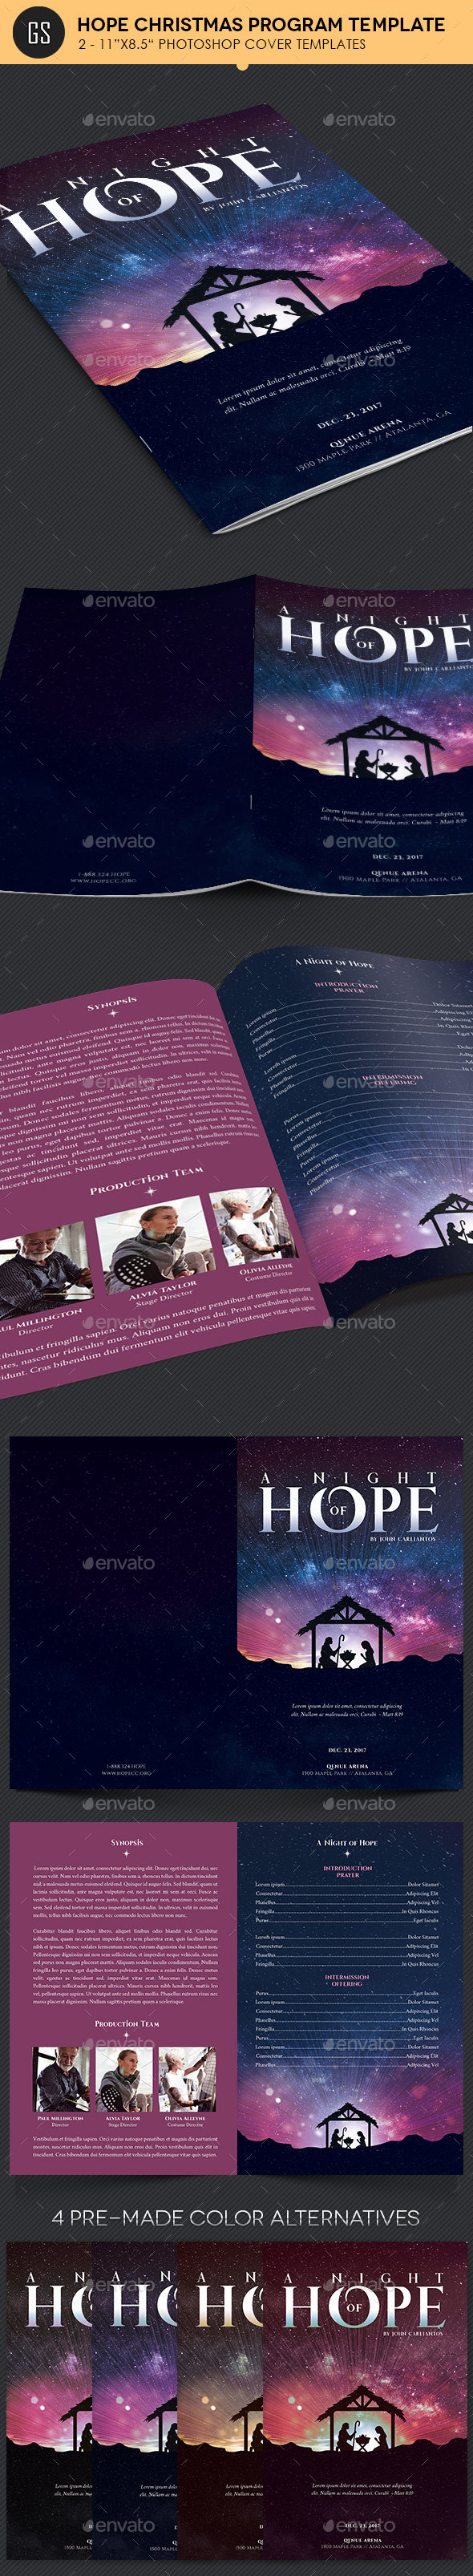 Hope Christmas Program Template - Informational Brochures